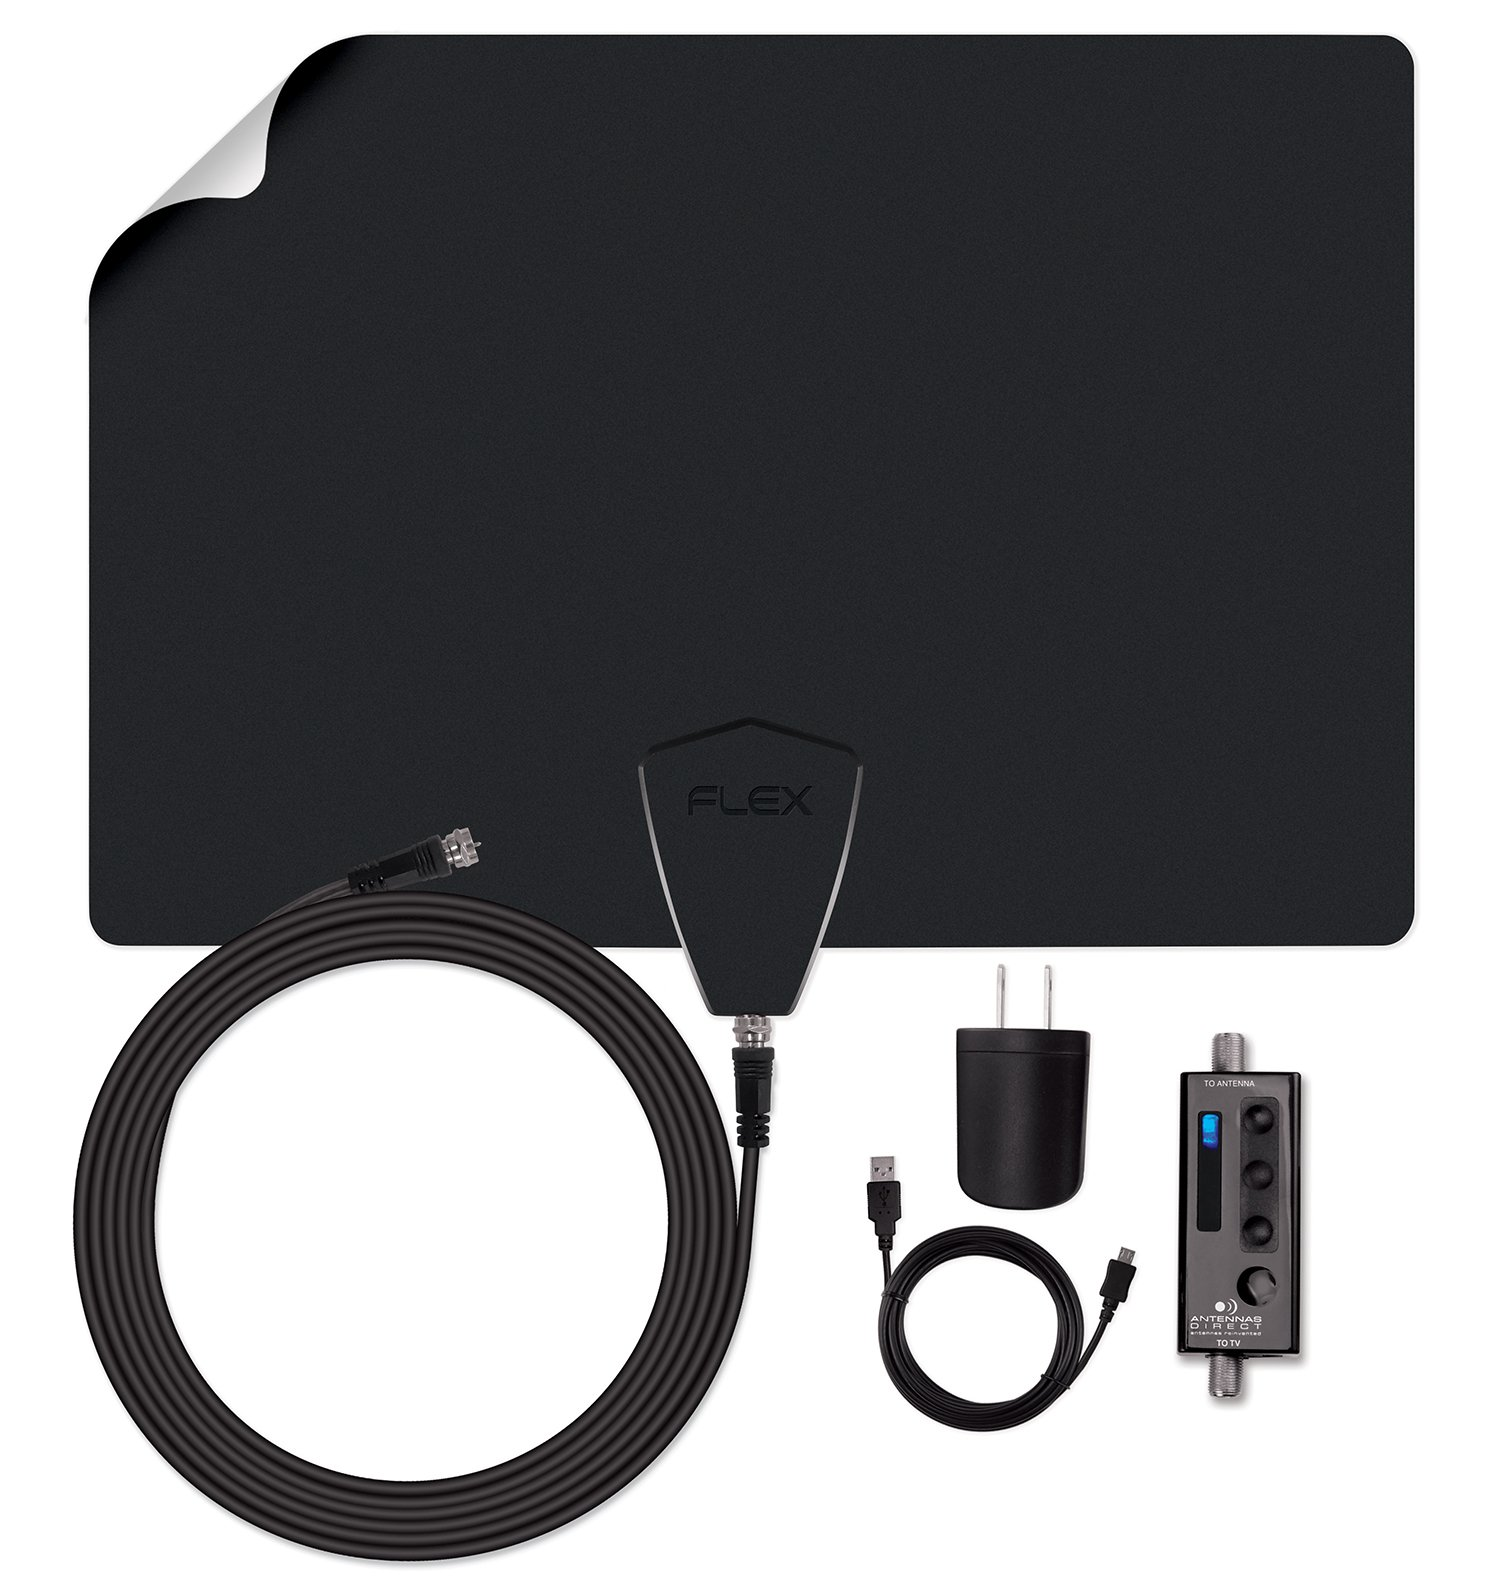 Antennas Direct ClearStream FLEX Amplified TV Antenna, 50+ Mile Range, UHF/VHF, Multi-directional, Grips to Walls, USB In-Line Amplifier, 15 ft. RG-6 Cable, 4K Ready, Black/White/Paintable - FLEX